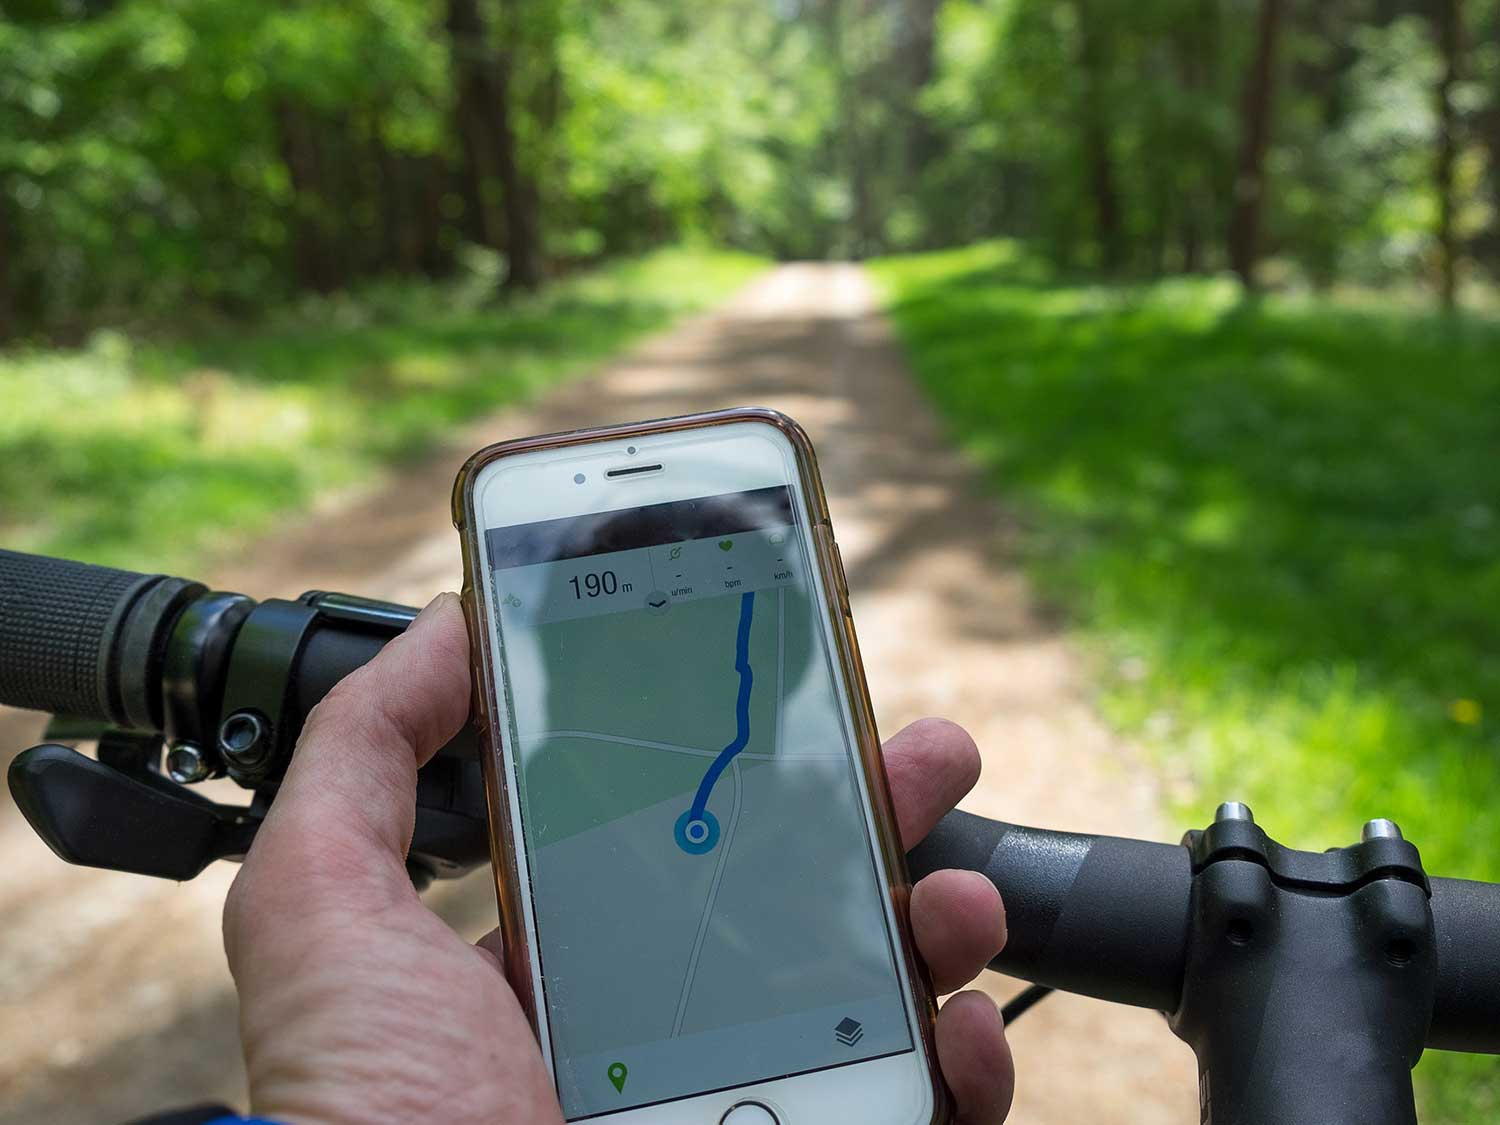 Phone on bicycle ride.